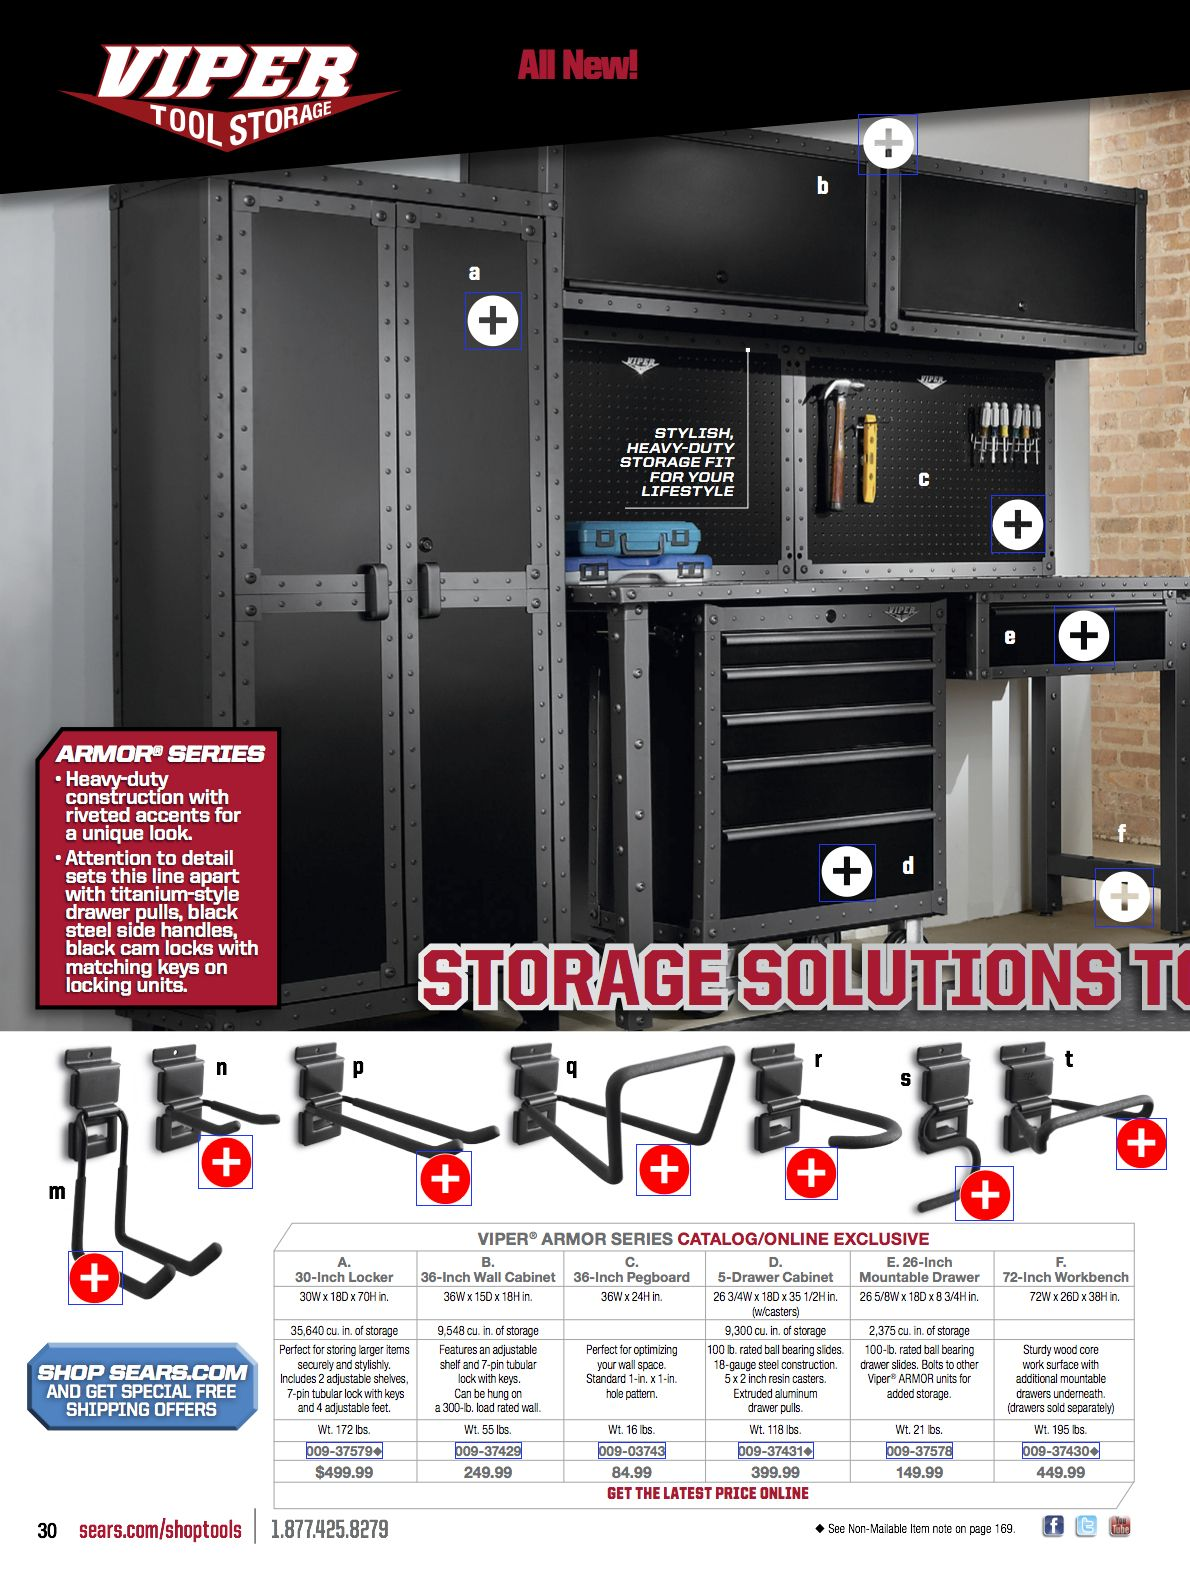 Viper tool storage system for garage. Like black locker, workbench and  cabinets. Via - Viper Tool Storage System For Garage. Like Black Locker, Workbench